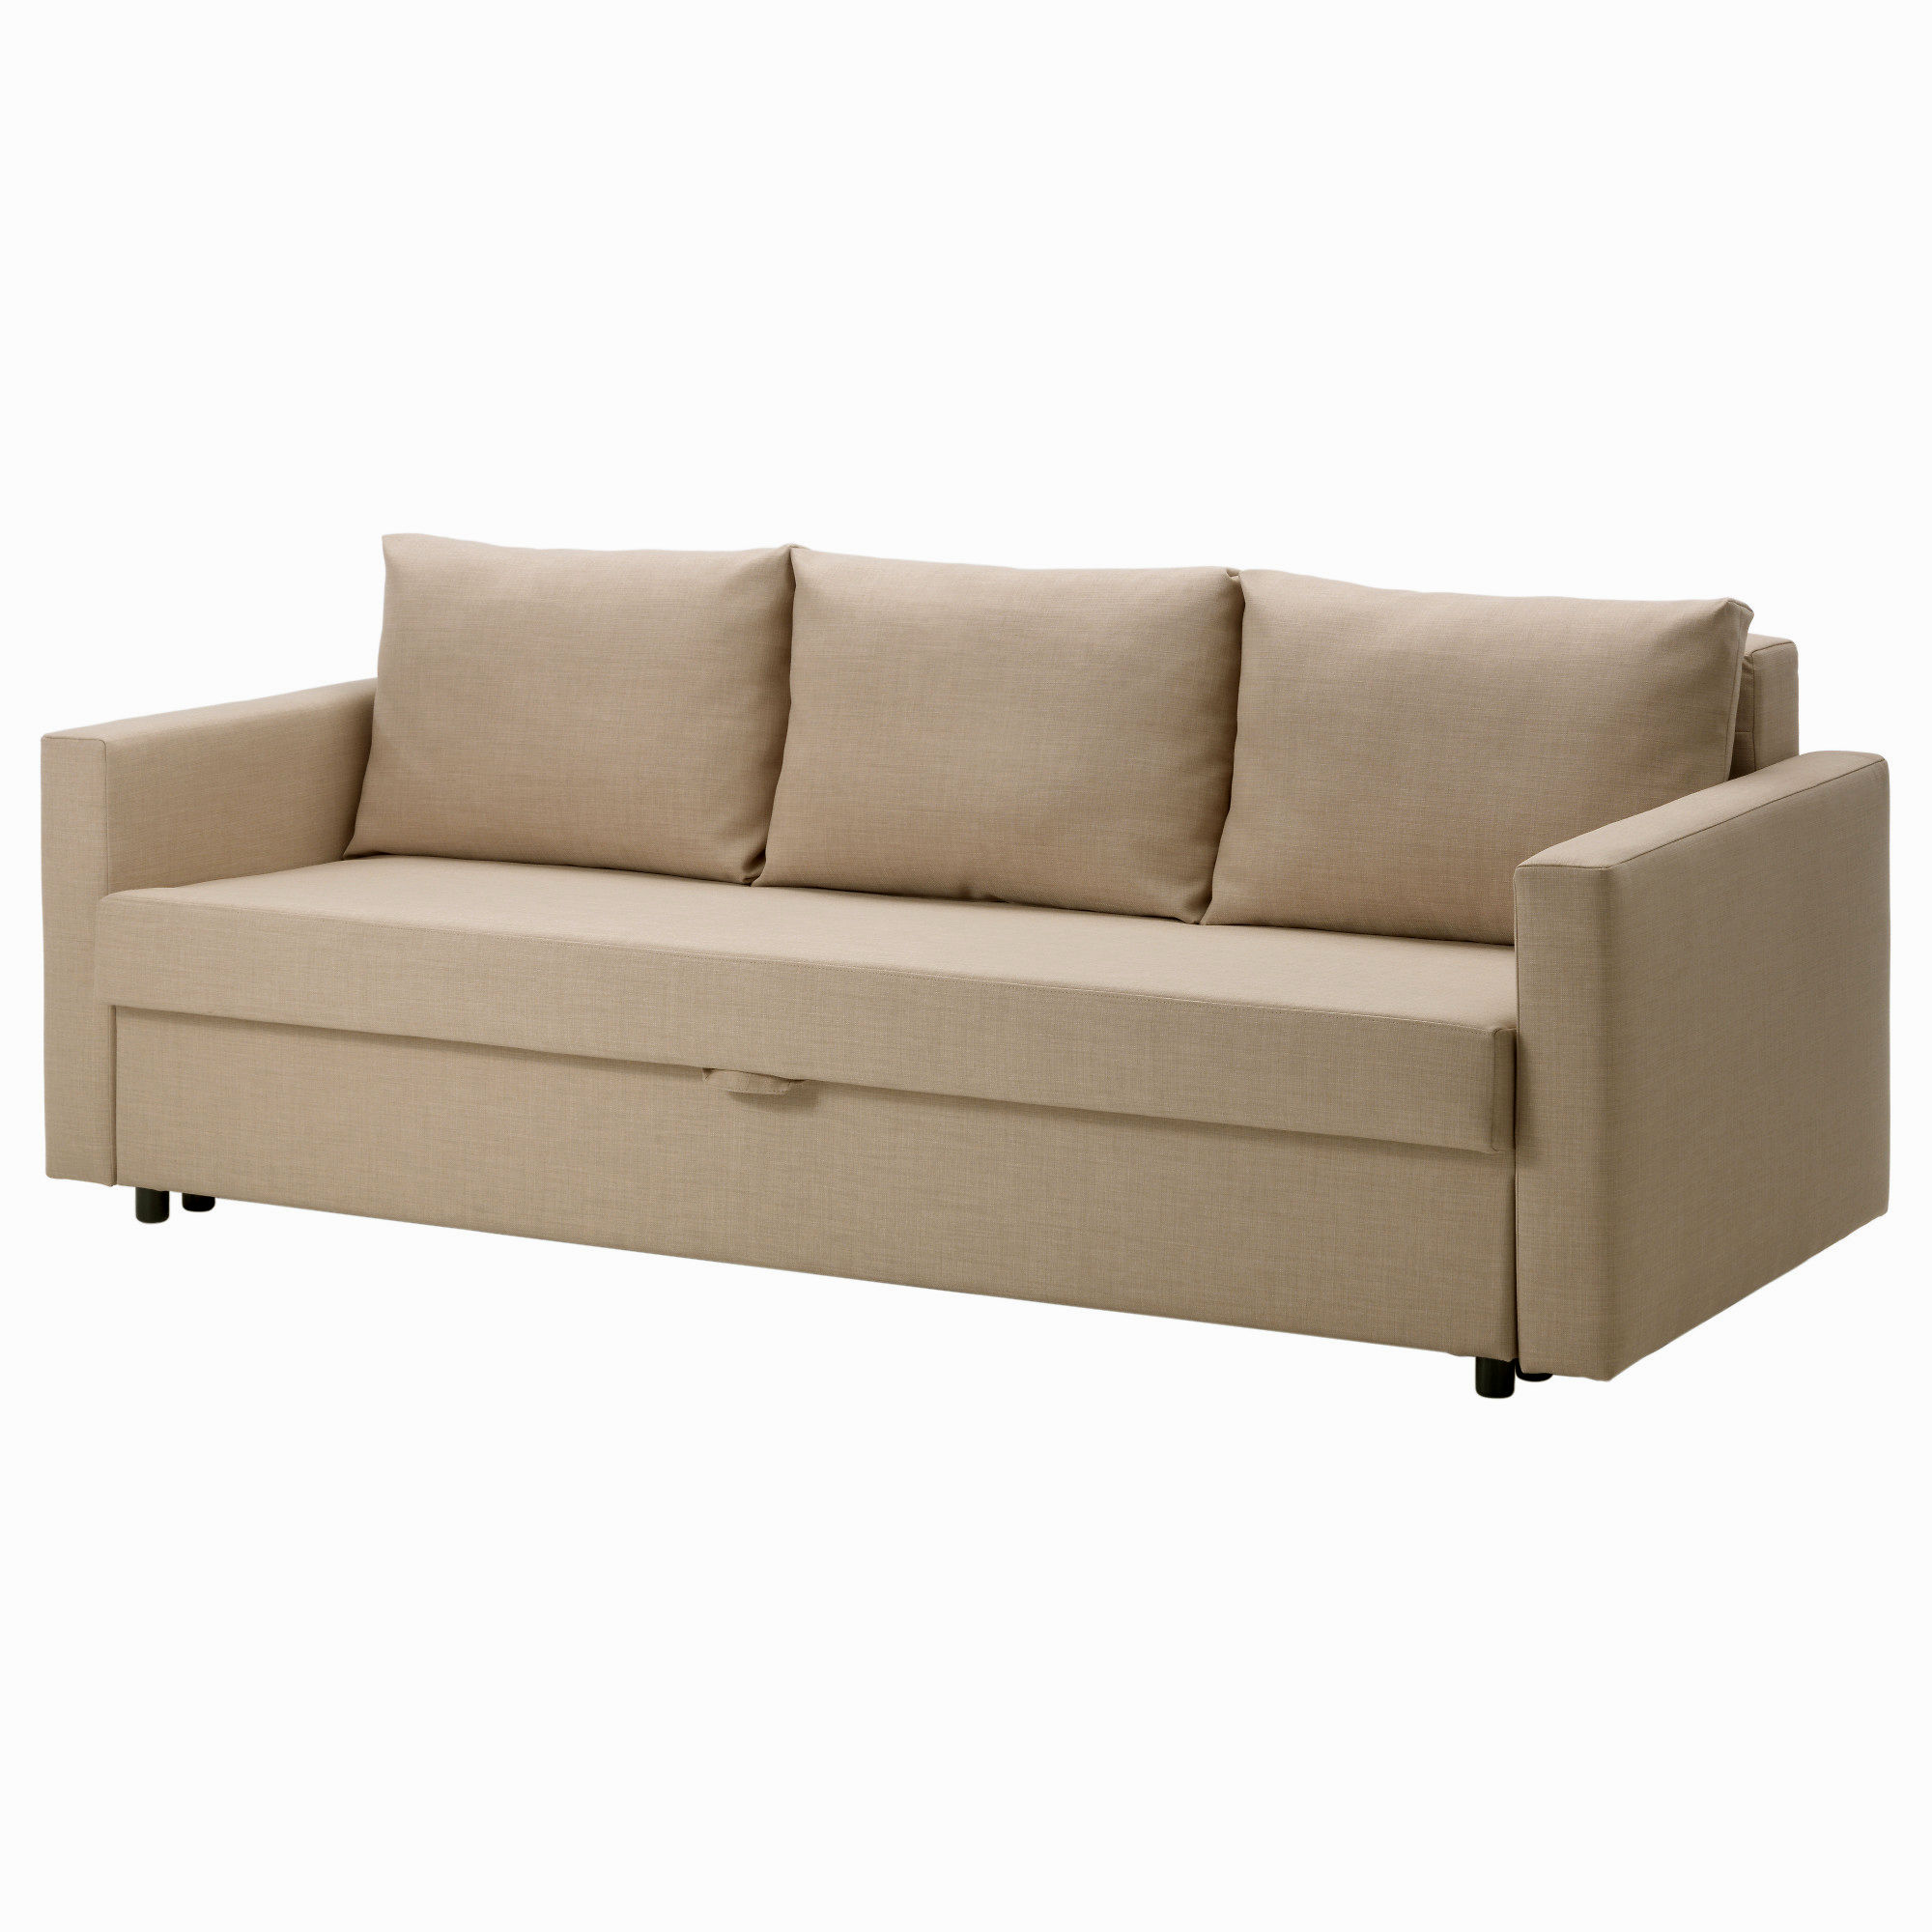 Box Type Sofa Designs: Fantastic Twin Sleeper Sofa Ikea Pattern